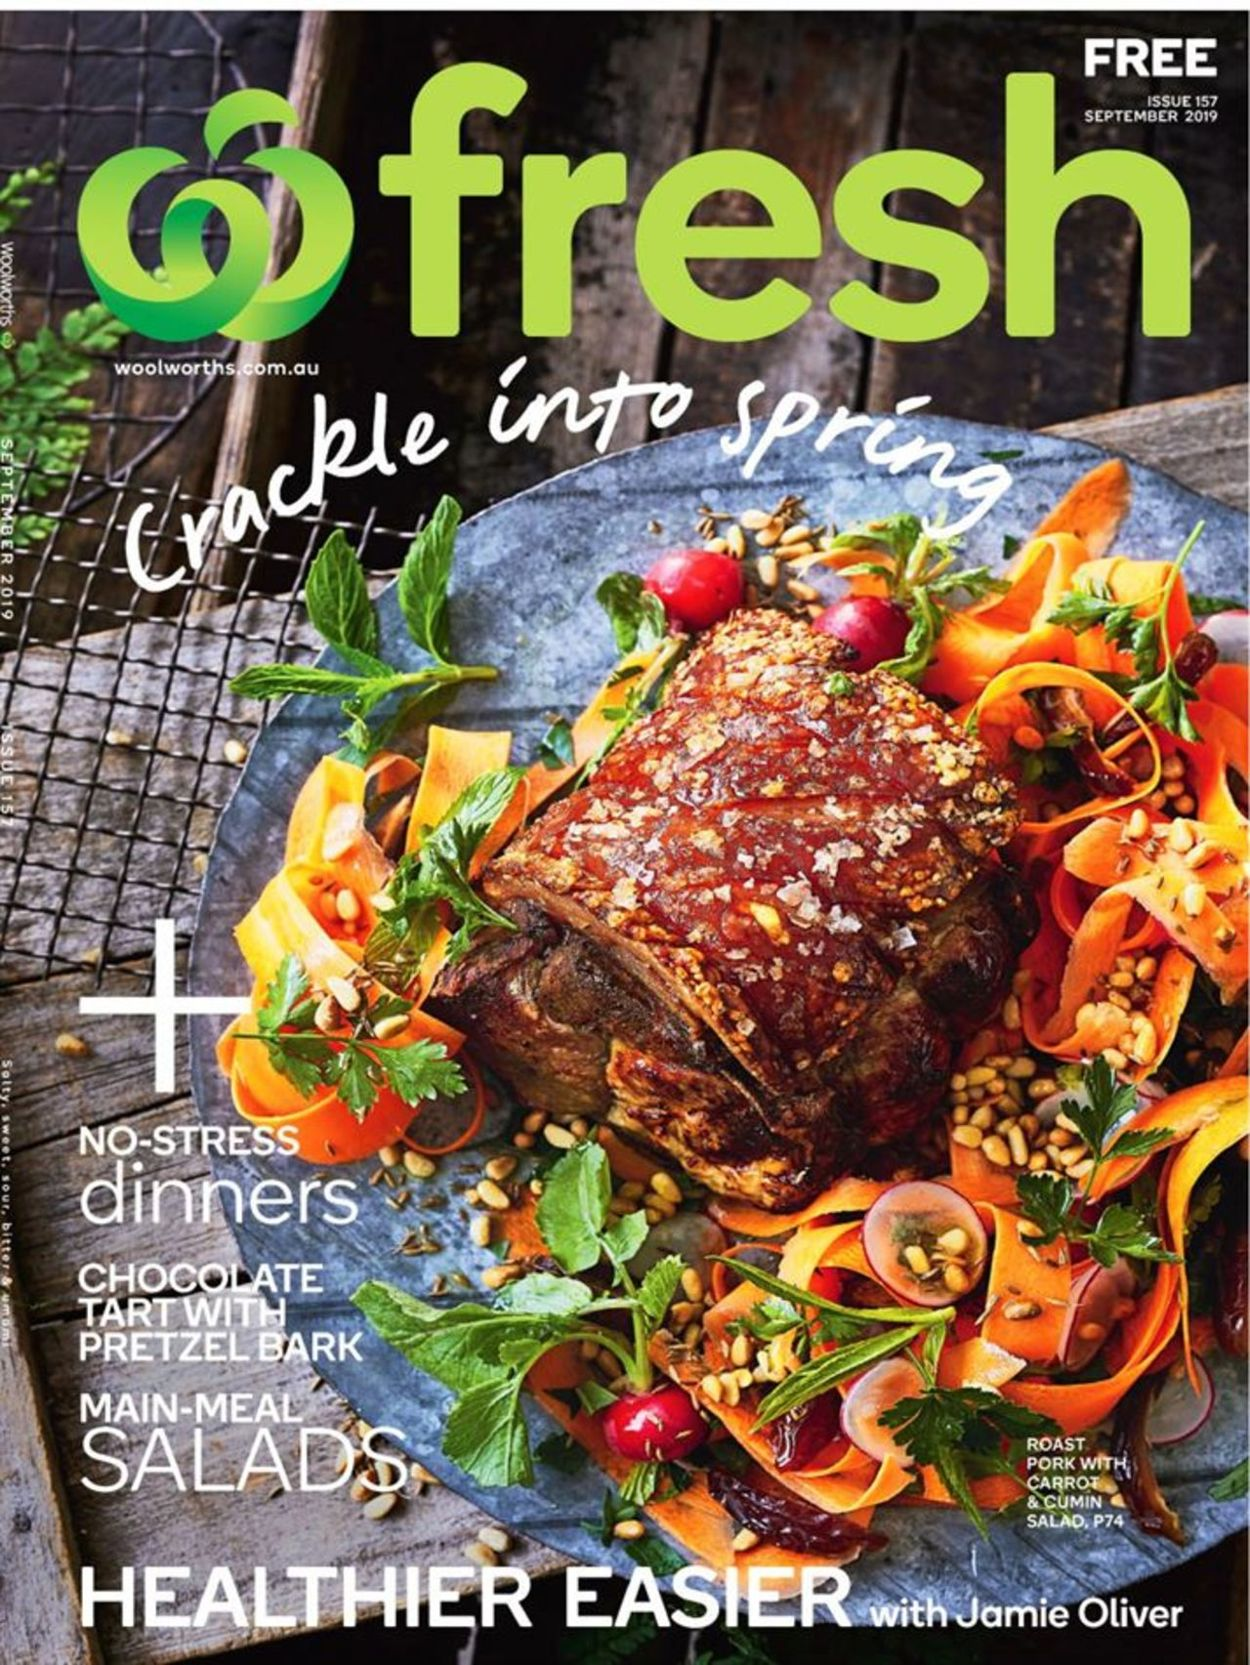 Woolworths Catalogue - 02/09-30/09/2019